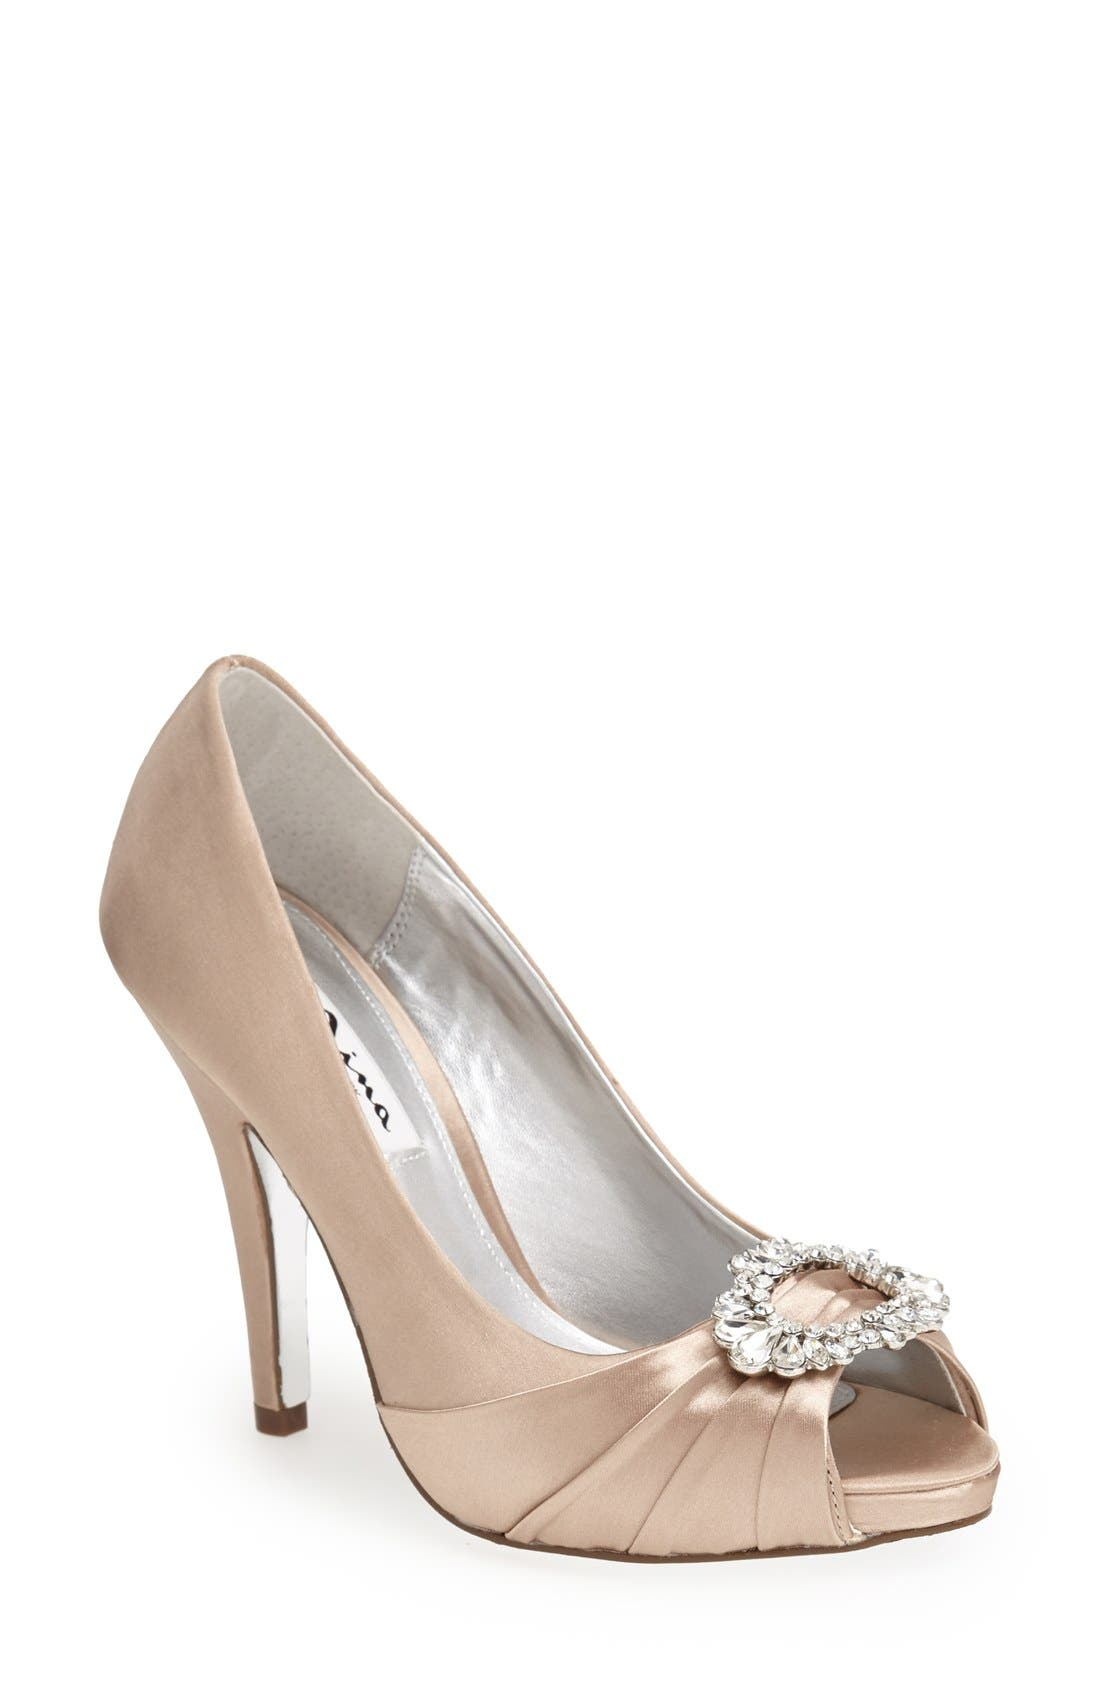 Alternate Image 1 Selected - Nina 'Elvira' Peep Toe Pump (Women)